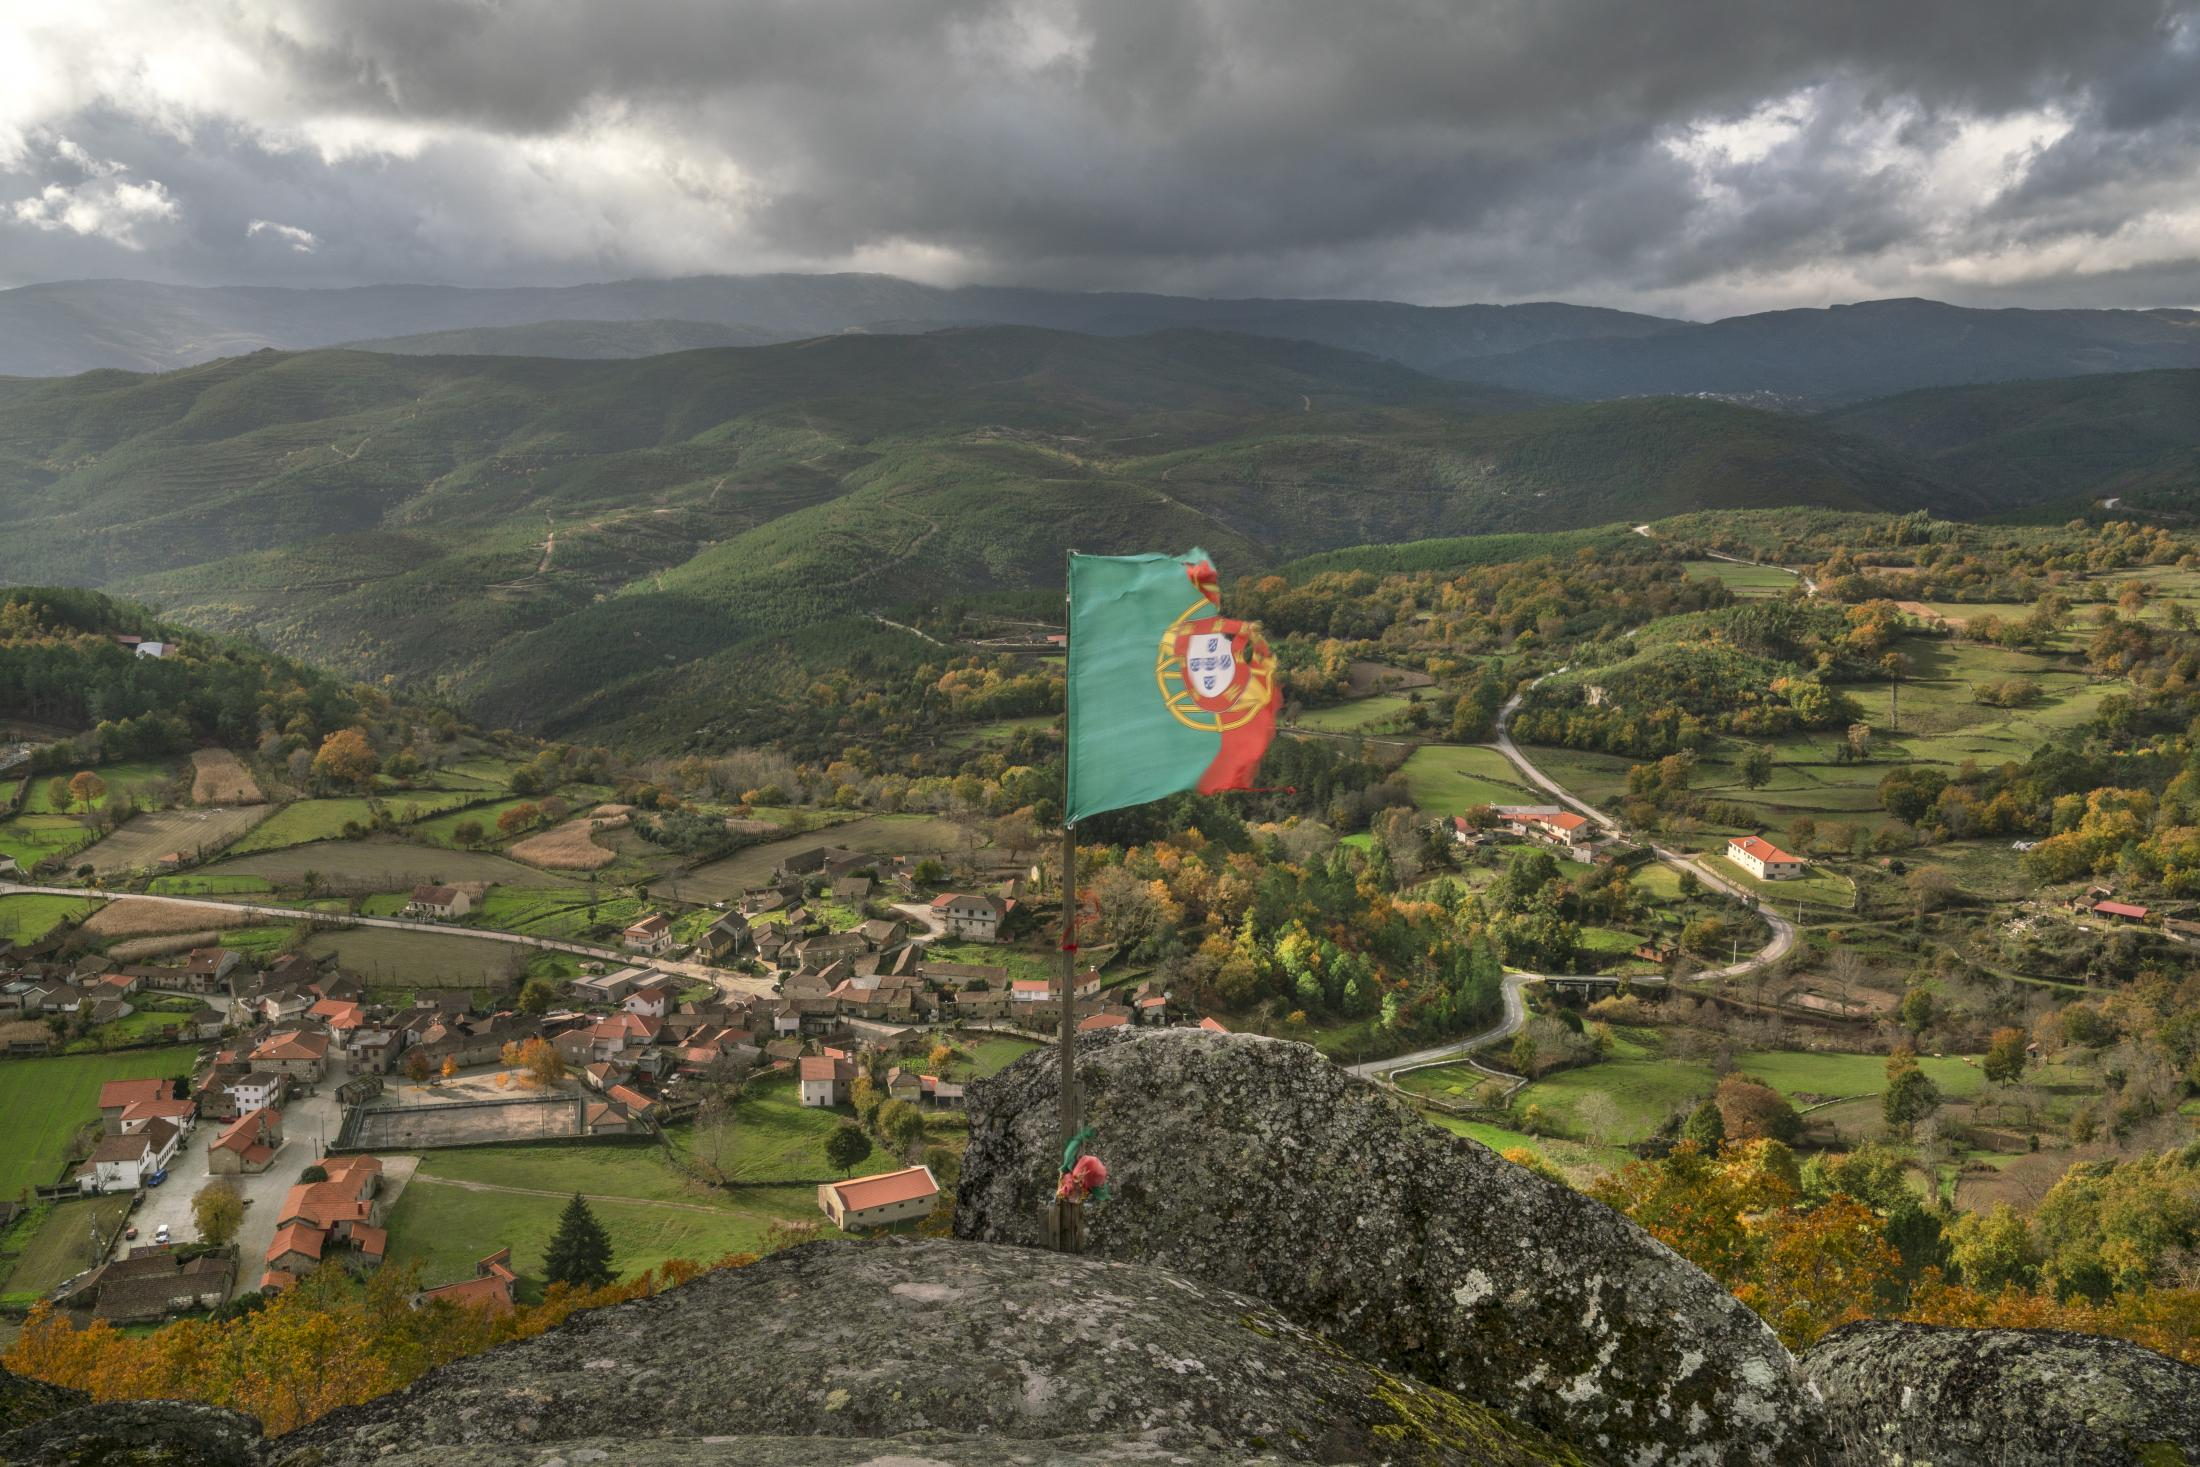 Portuguese flag flies on a hill overlooking the village of Covas do Barroso, in the Barroso region of Portugal. The mountains behind the village contain a large lithium vein that the Portuguese government would like to see explored as part of its objective to turn the country into a manufacturing hub for electric car batteries. The planned open-pit mine would be less than 500 meters from the center of the village and would require changing the course of the river that crosses the village, threatening the springs that irrigate the fields of most local farmers